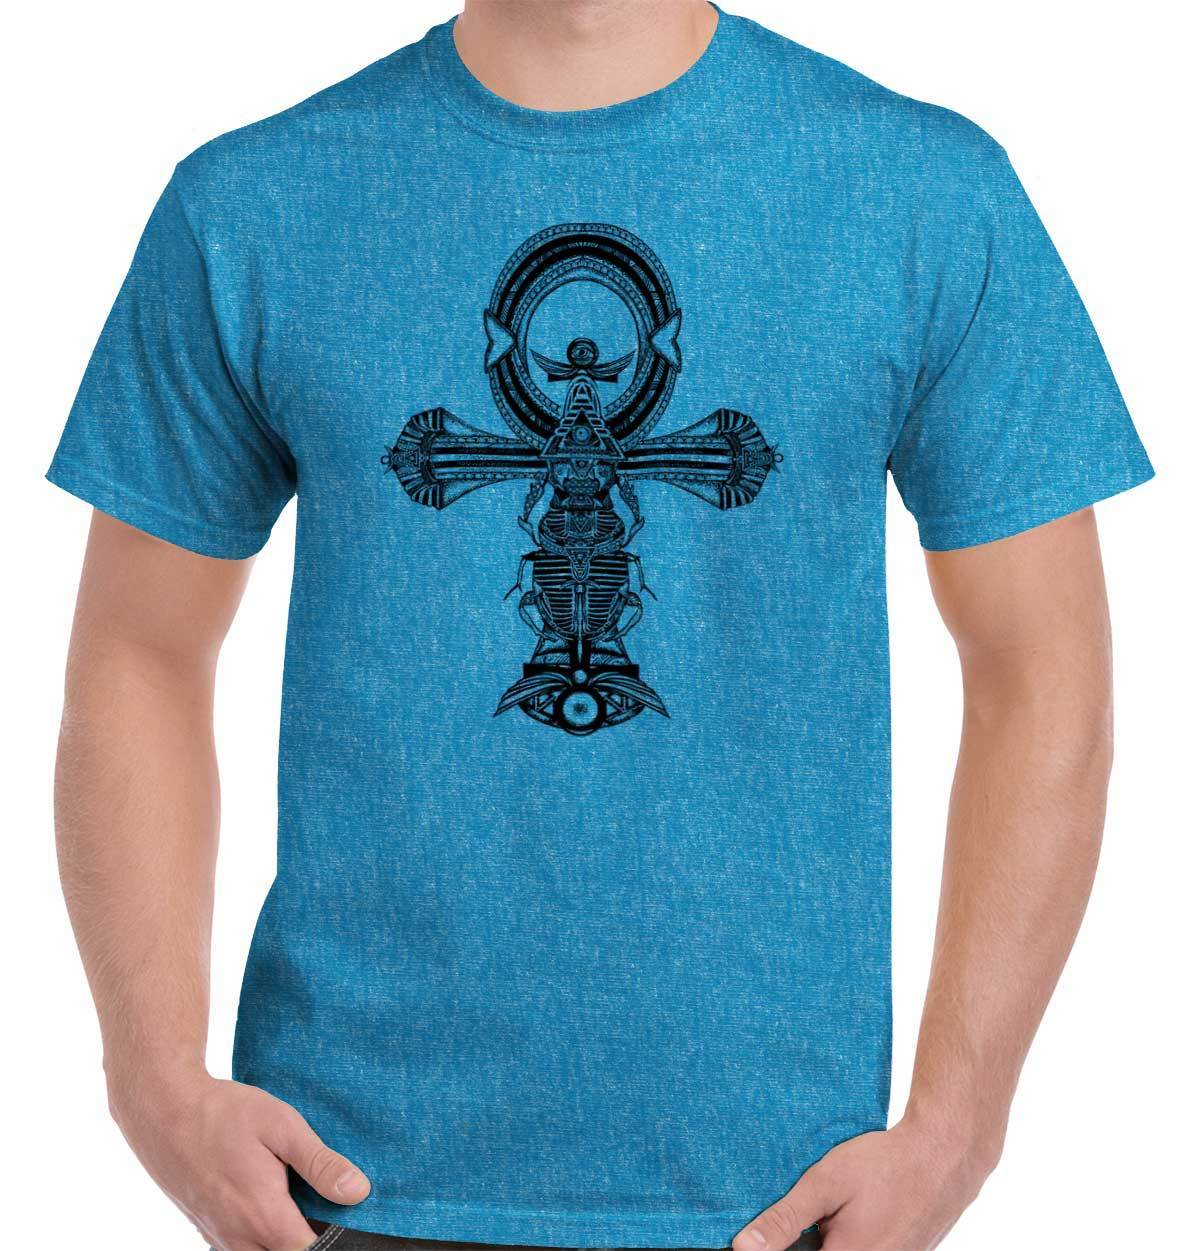 Ankh Cross Mystic Shirt | Spirit Animal New Age Mystery Life T Shirt Short Sleeve Fashion Summer Printing Casual